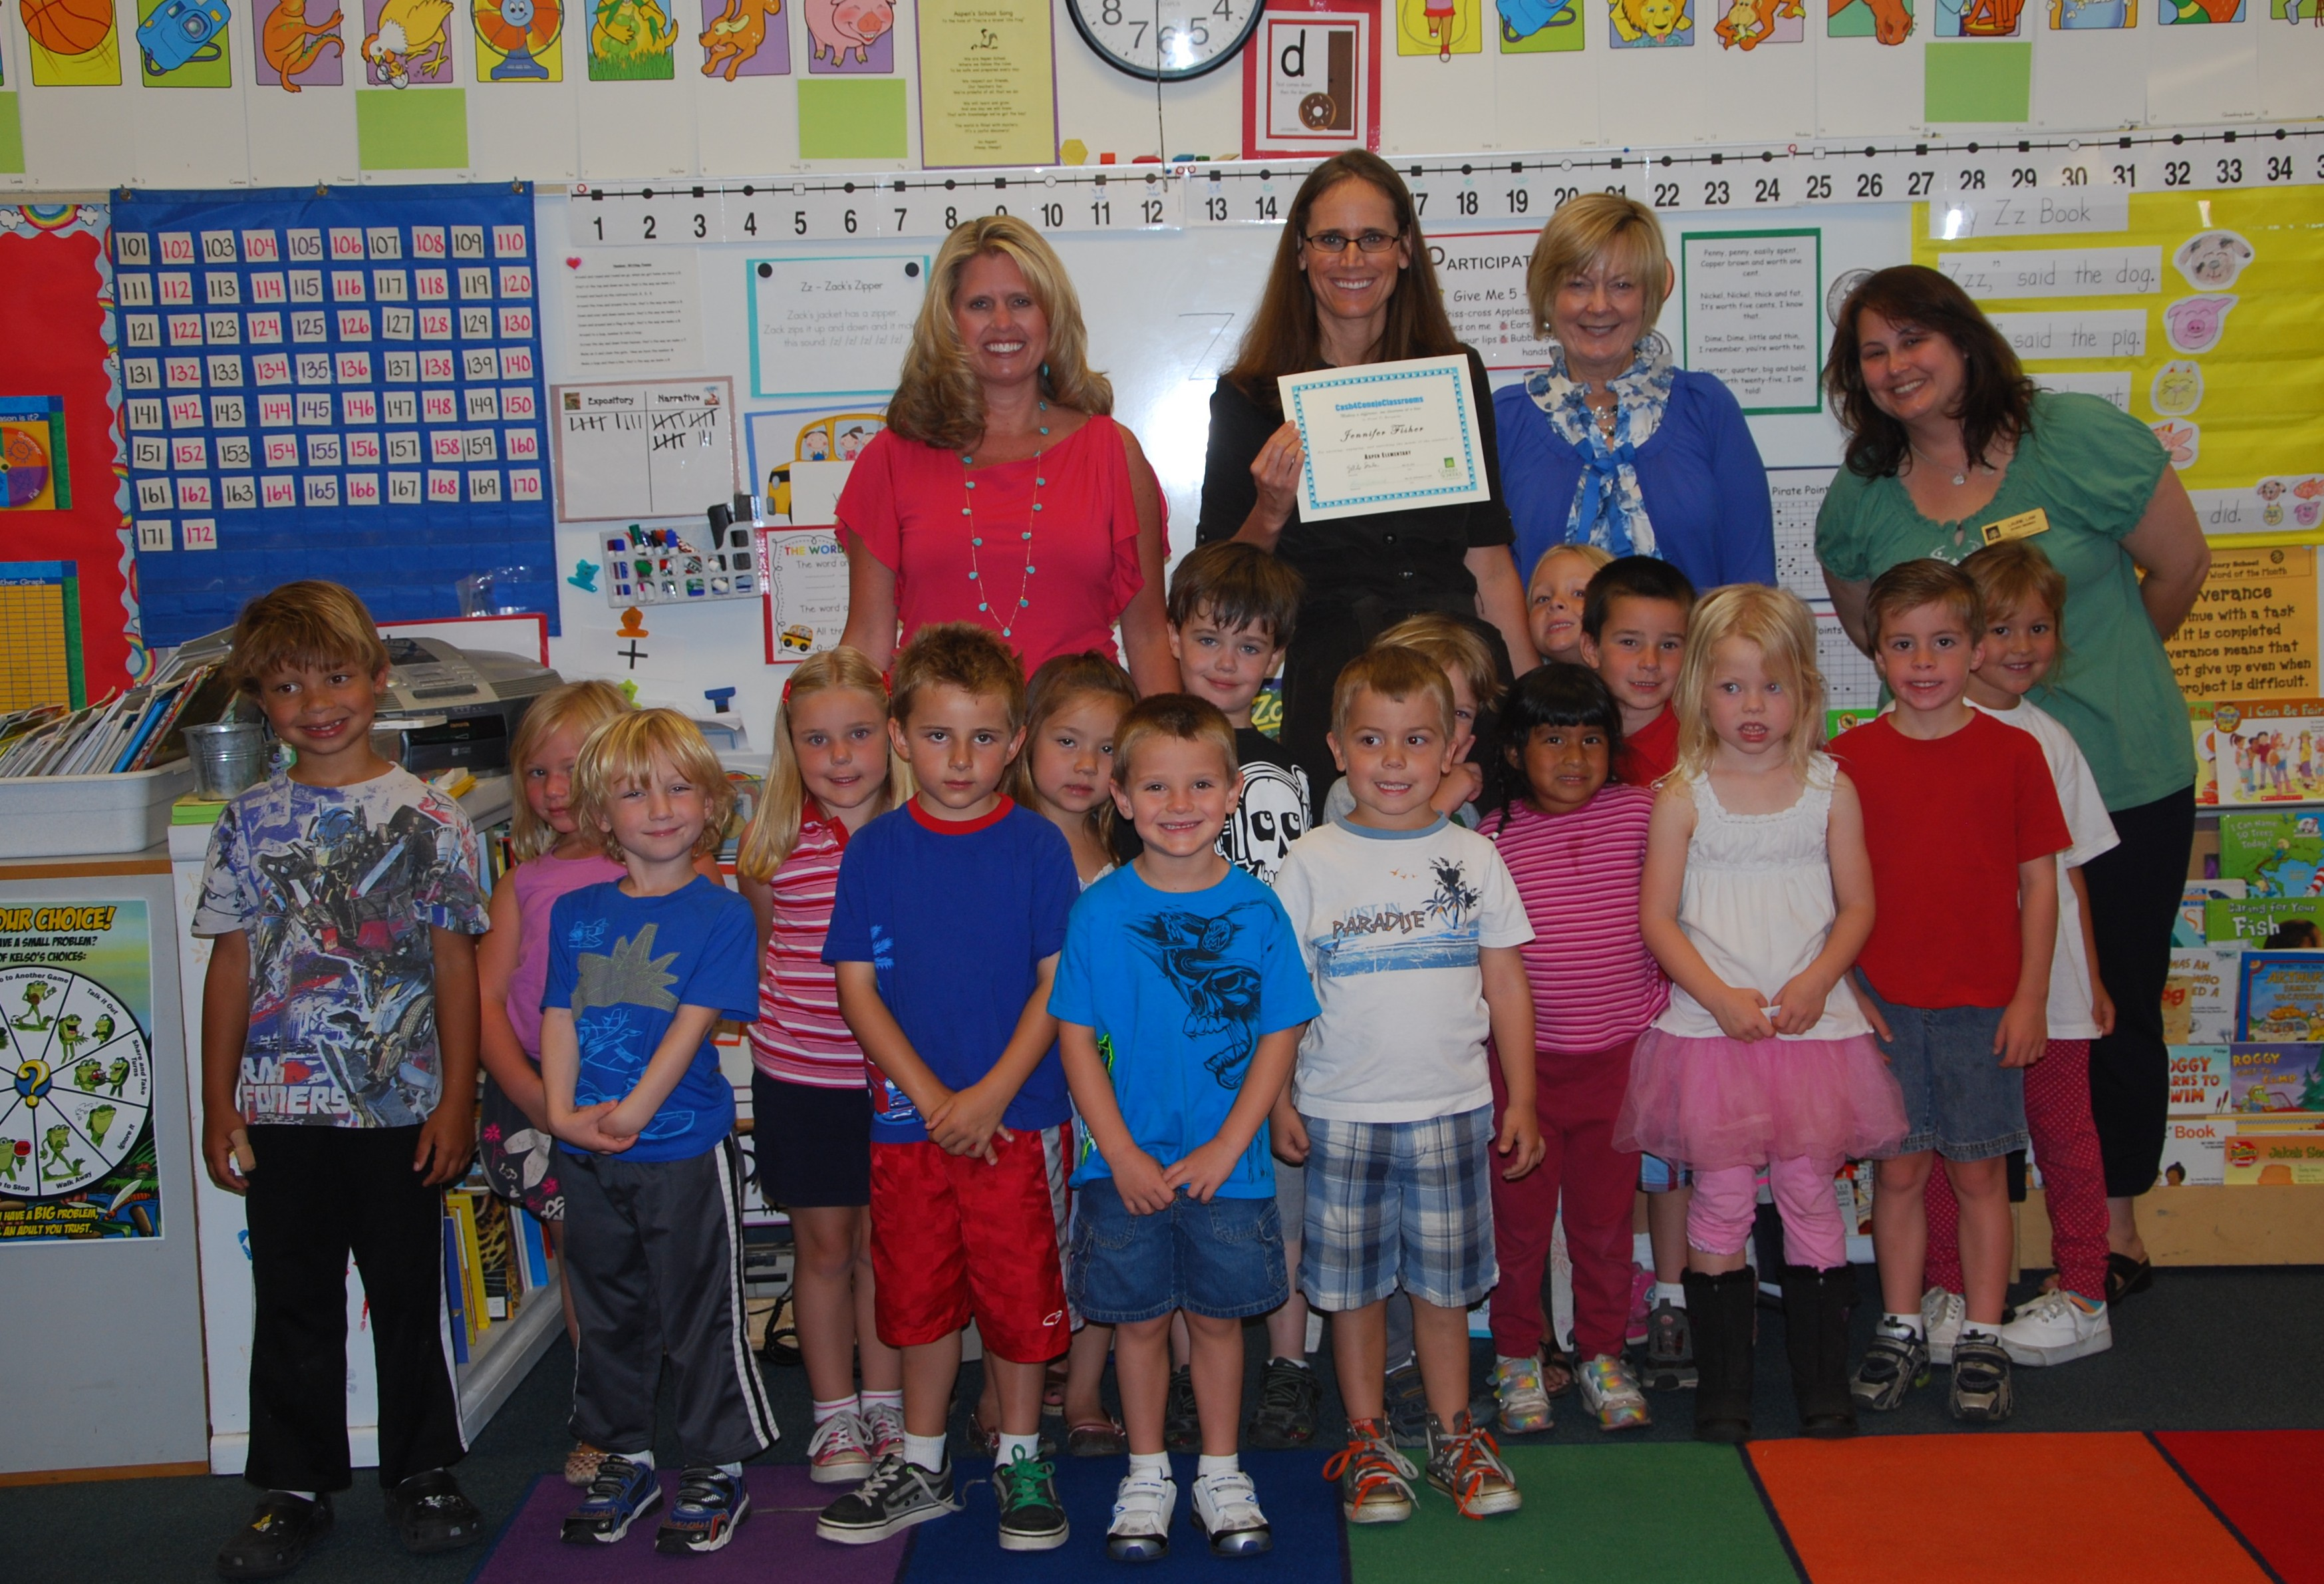 Worksheet Kindergarten Elementary School jr kindergarten cash 4 conejo classrooms and at acacia elementary school junior teacher mary beth stovall received a grant for her class